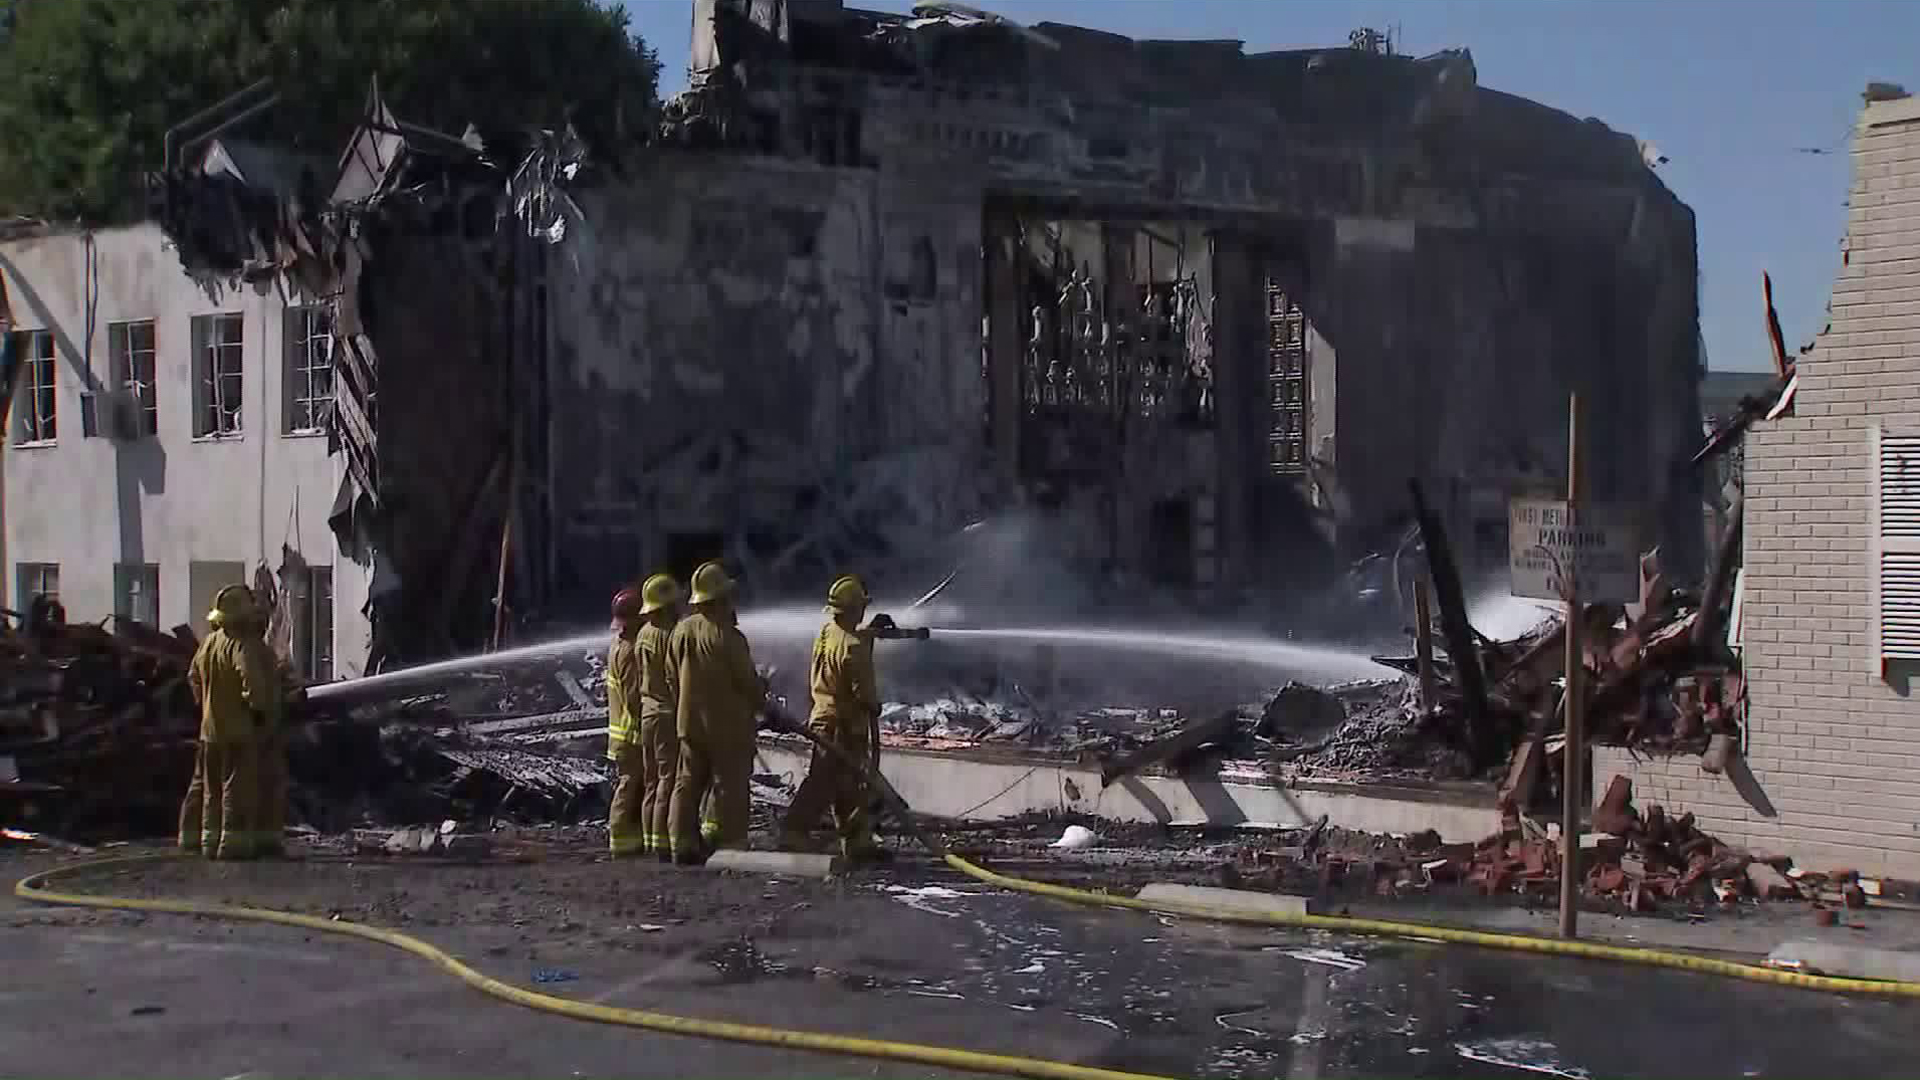 The Good Shepherd Bible Church in Whittier was destroyed in a fire on Oct. 31, 2019. (Credit: KTLA)